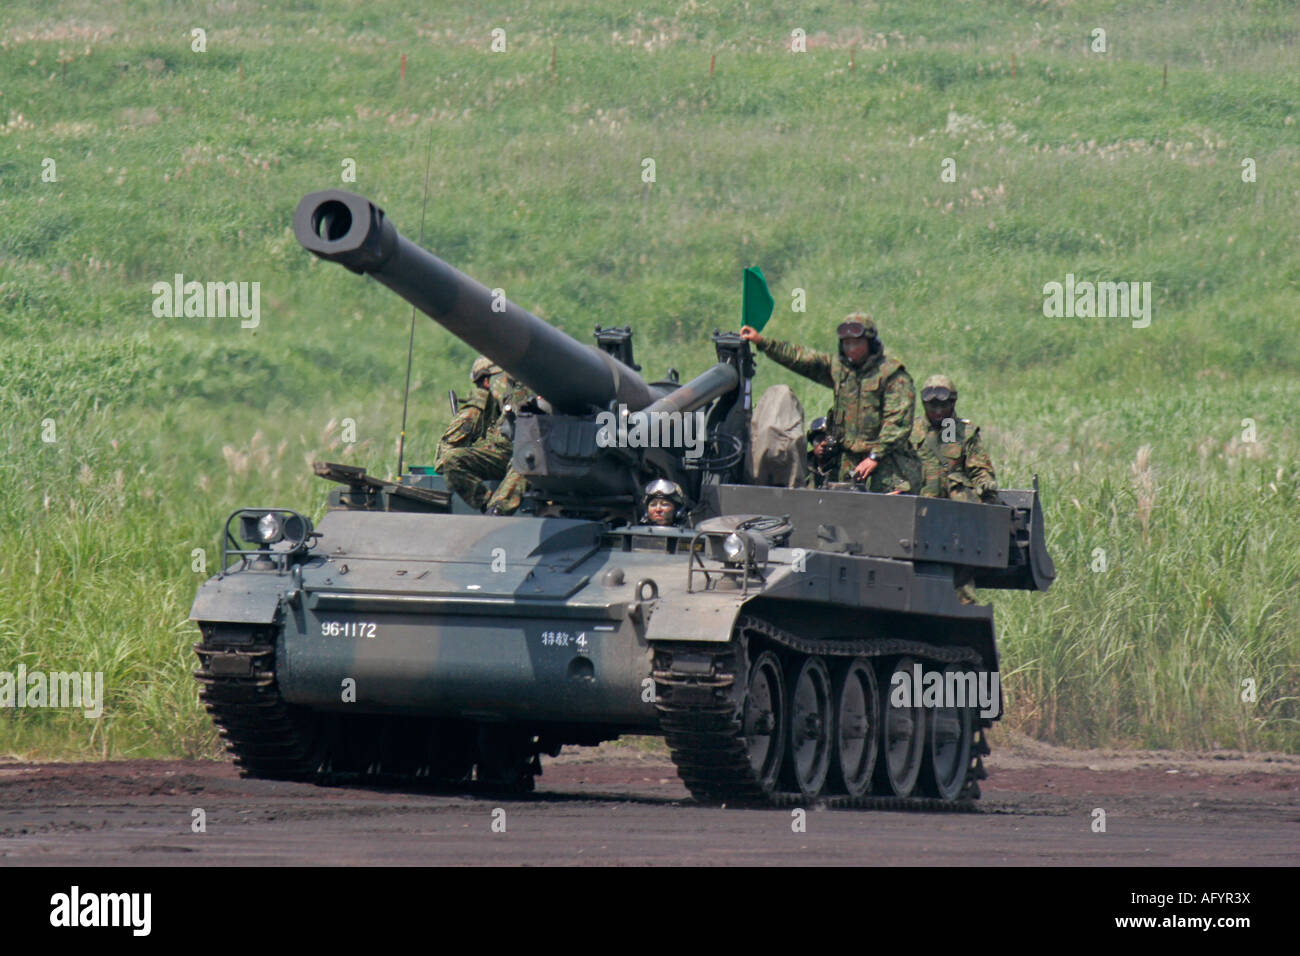 203mm Self Propelled Gun of Japan Ground Self Defence Force - Stock Image